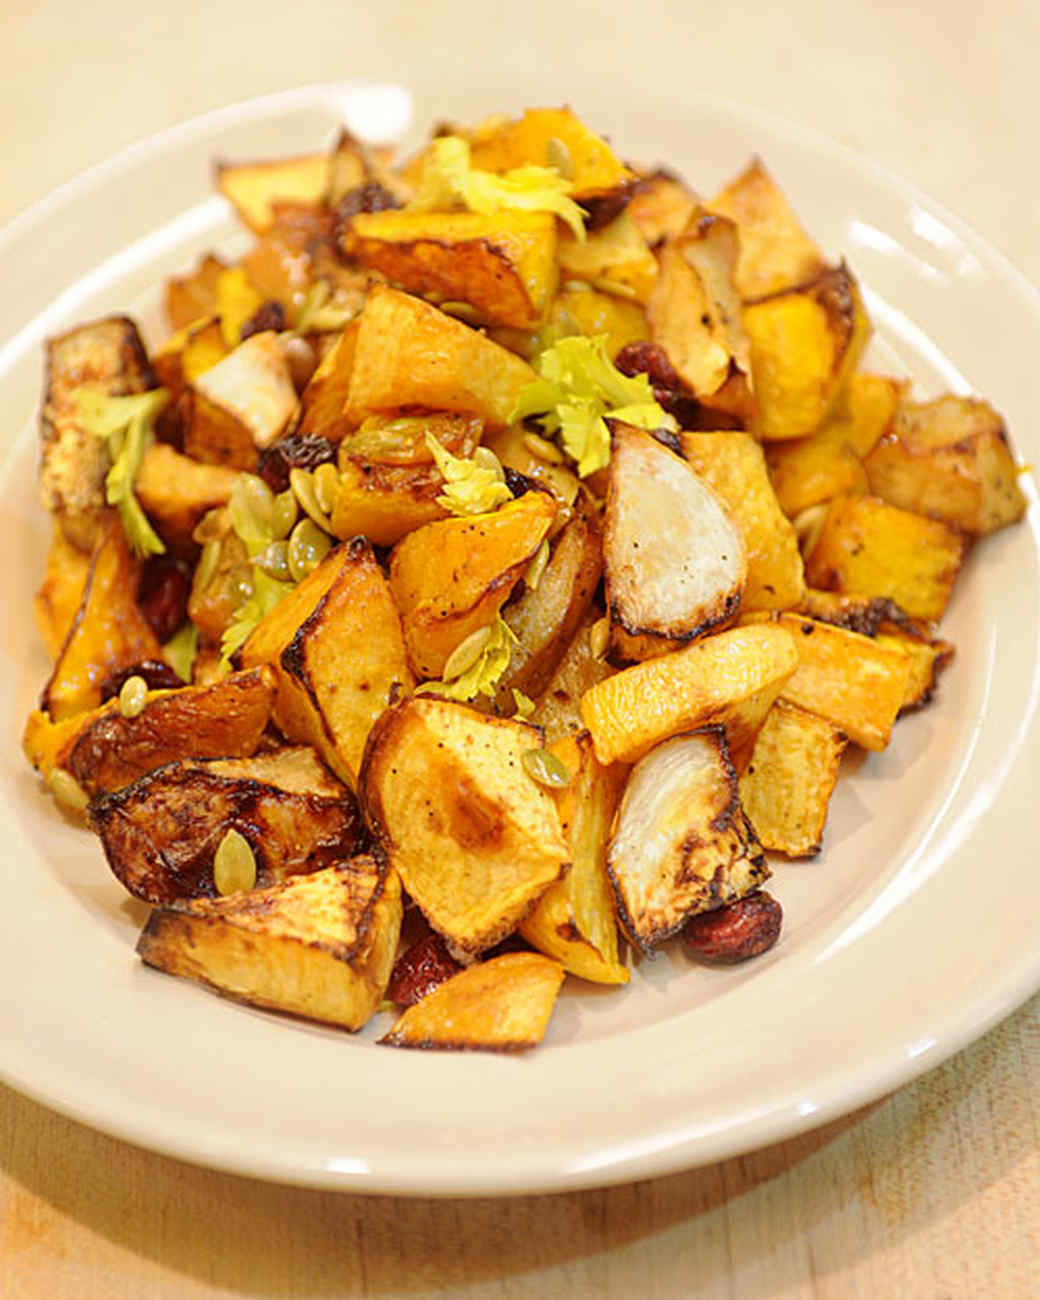 Oven-Roasted Vegetables with Apples, Dried Cranberries, and Pumpkin Seeds